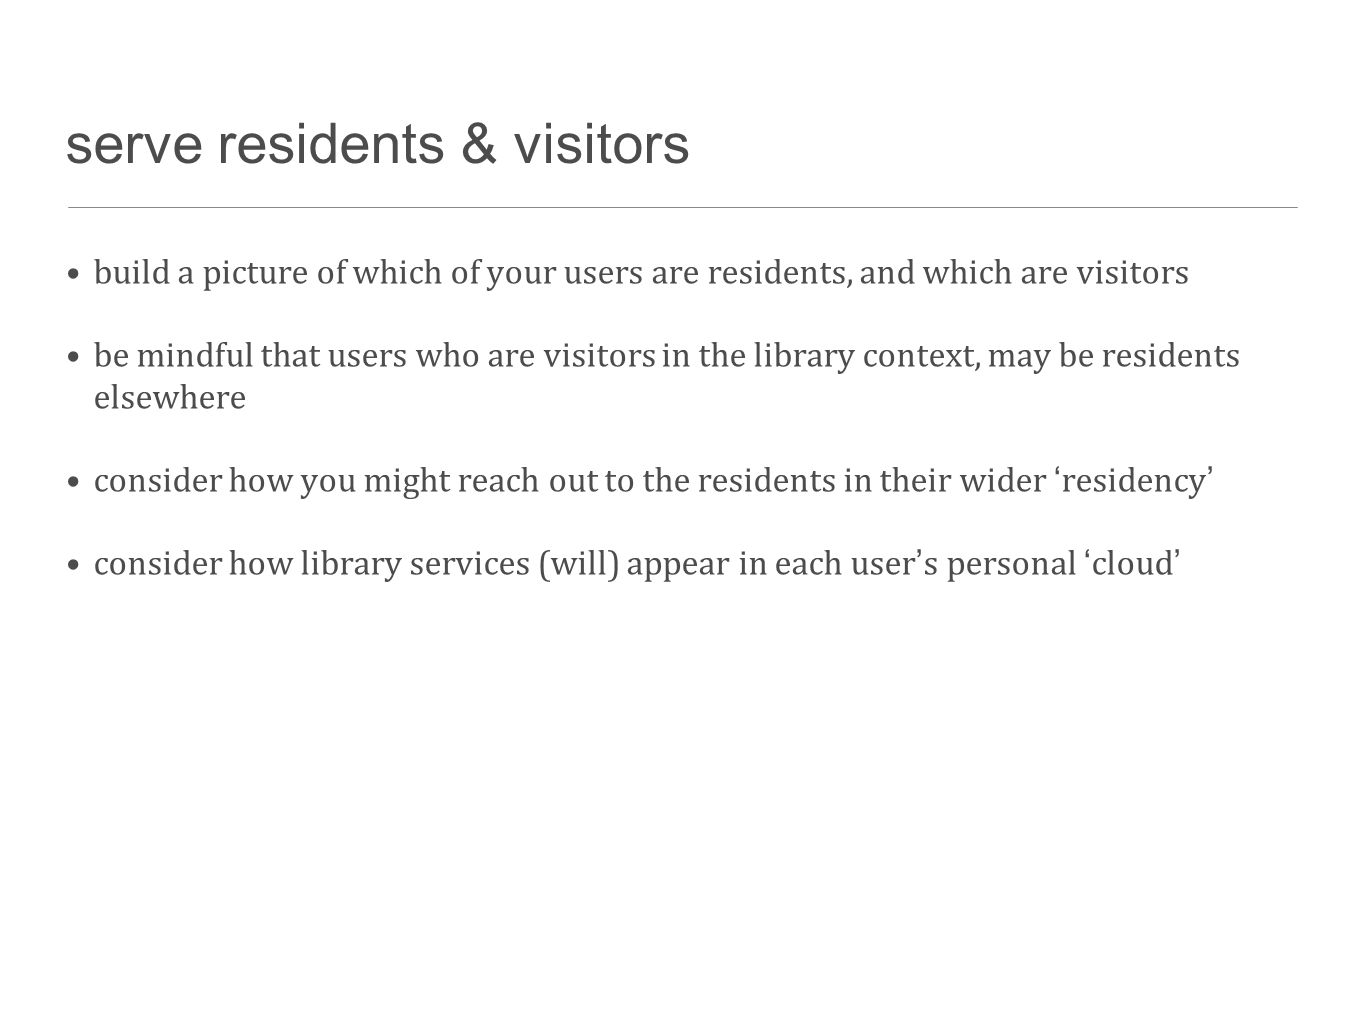 serve residents & visitors build a picture of which of your users are residents, and which are visitors be mindful that users who are visitors in the